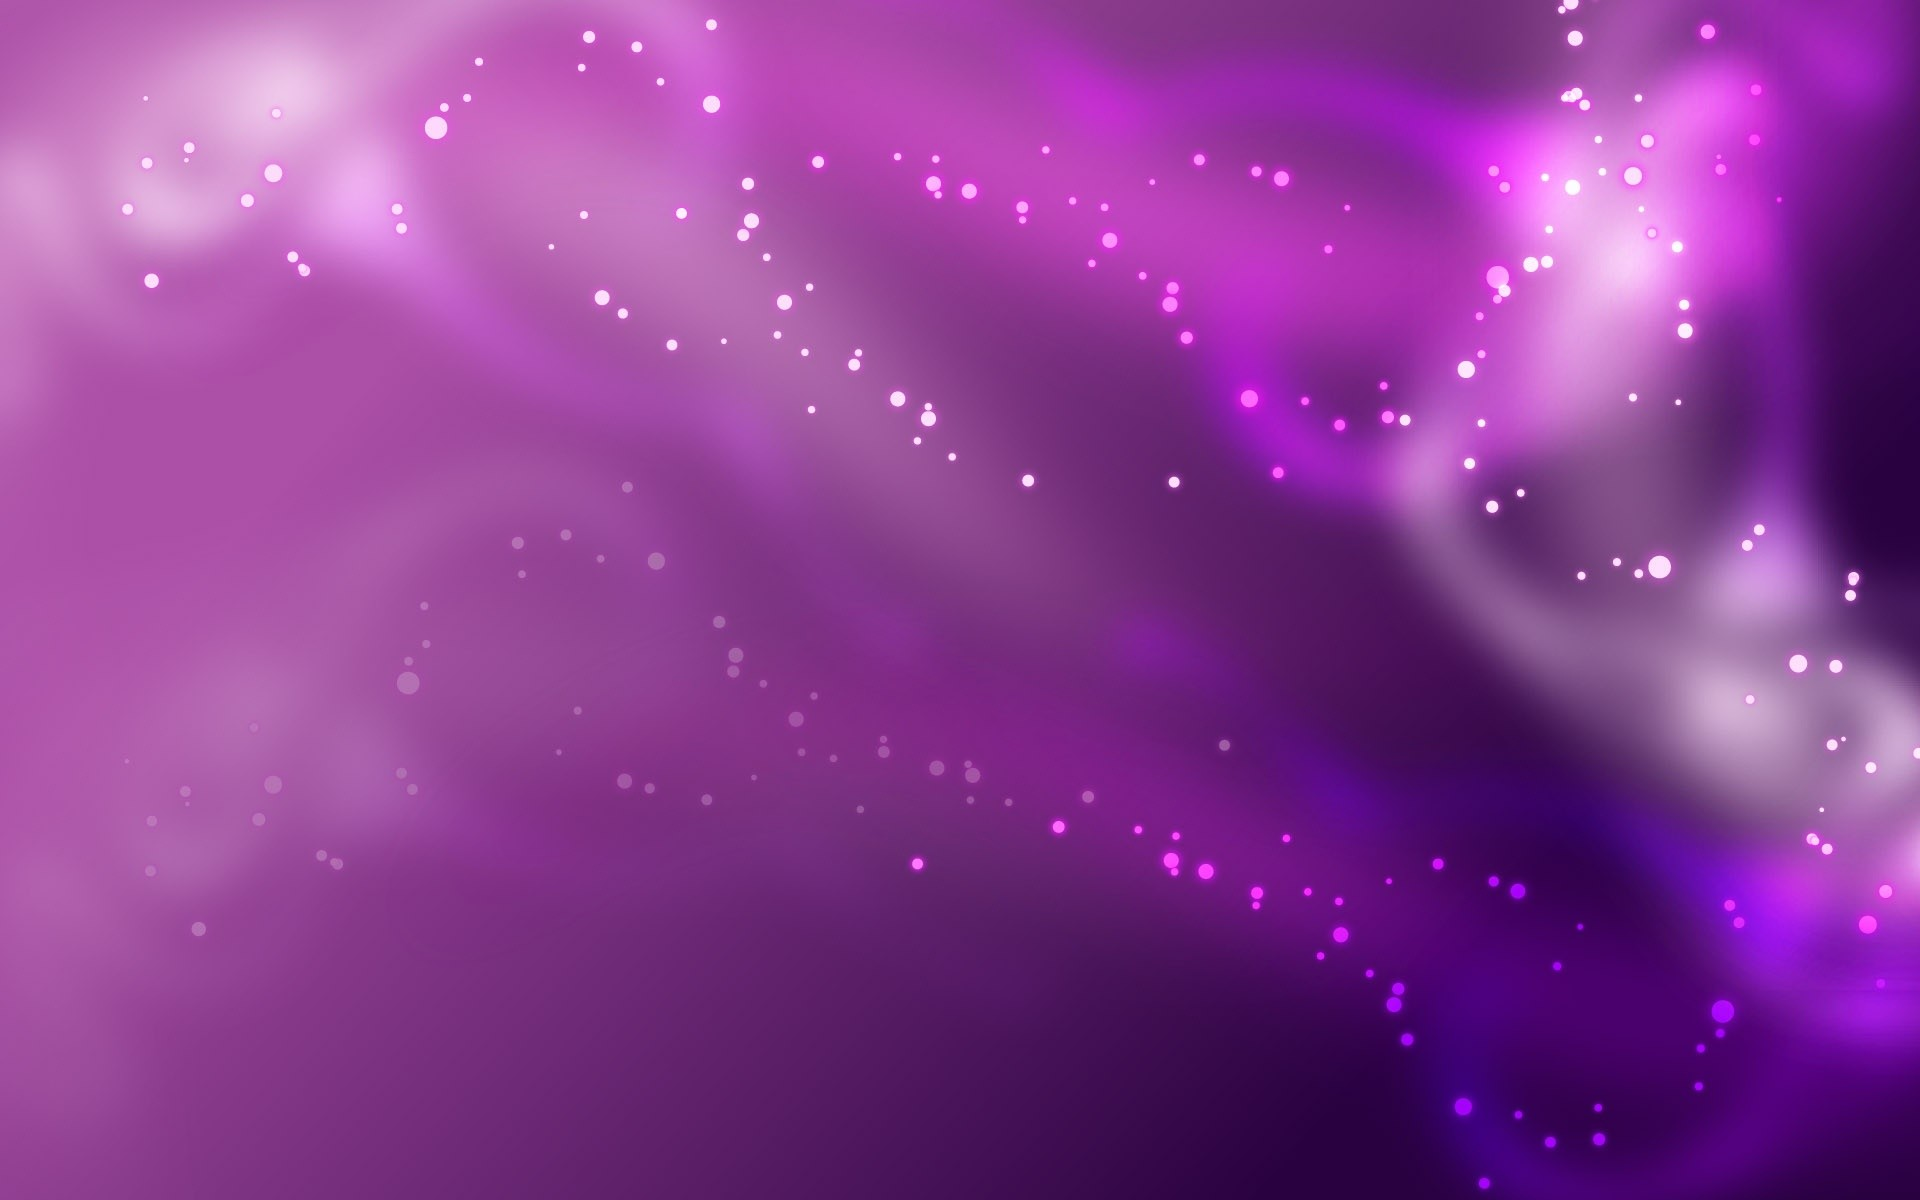 1920x1200 Abstract Wallpapers Hd Purple Design Wallpaper